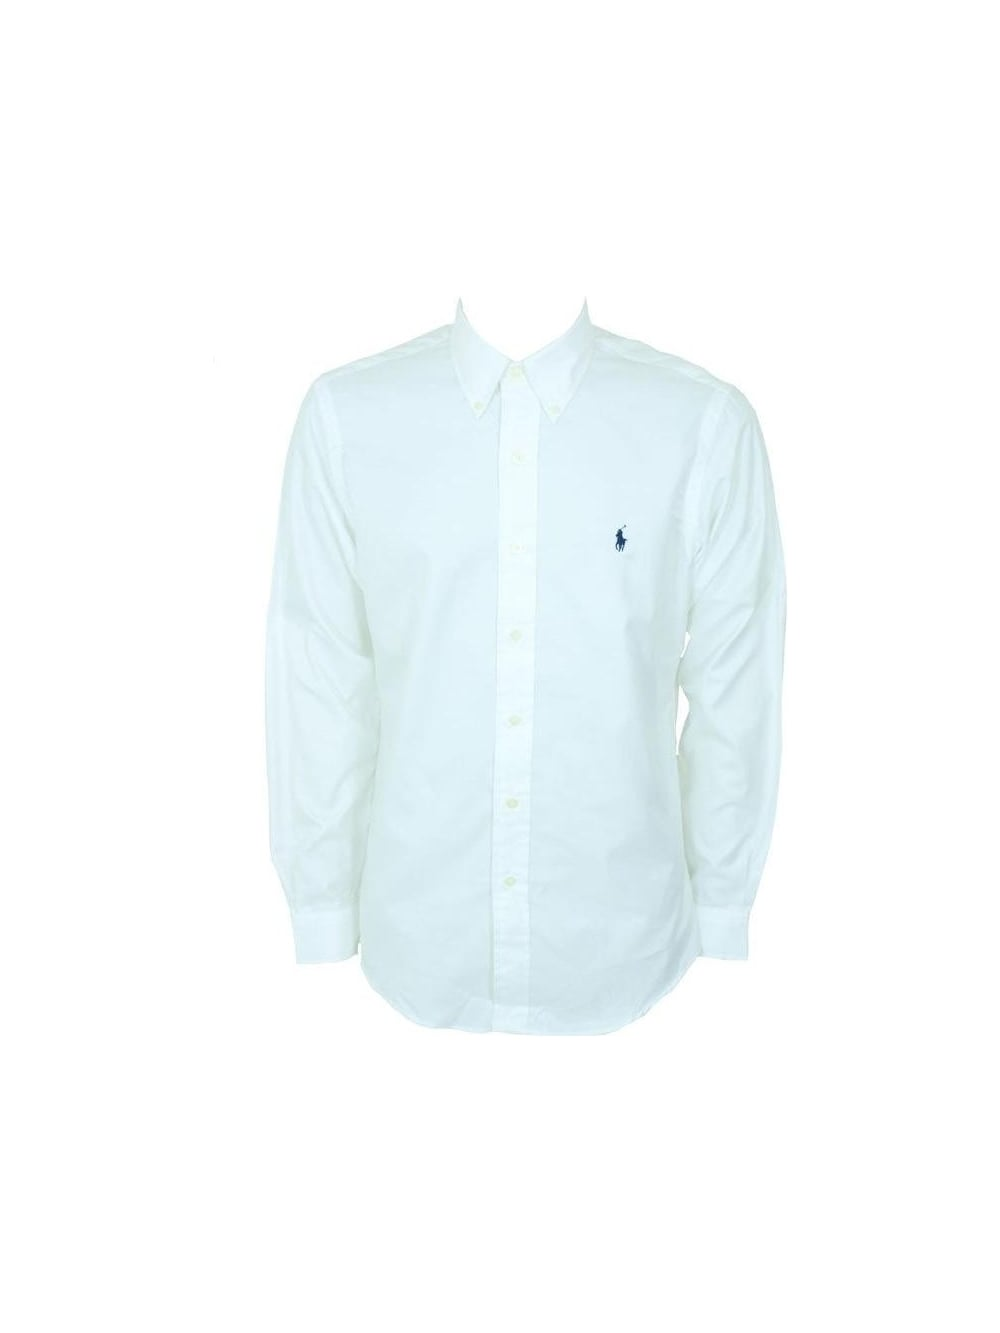 7557b72e Polo Ralph Lauren Custom Fit Solid Twill Shirt - Shop Online ...